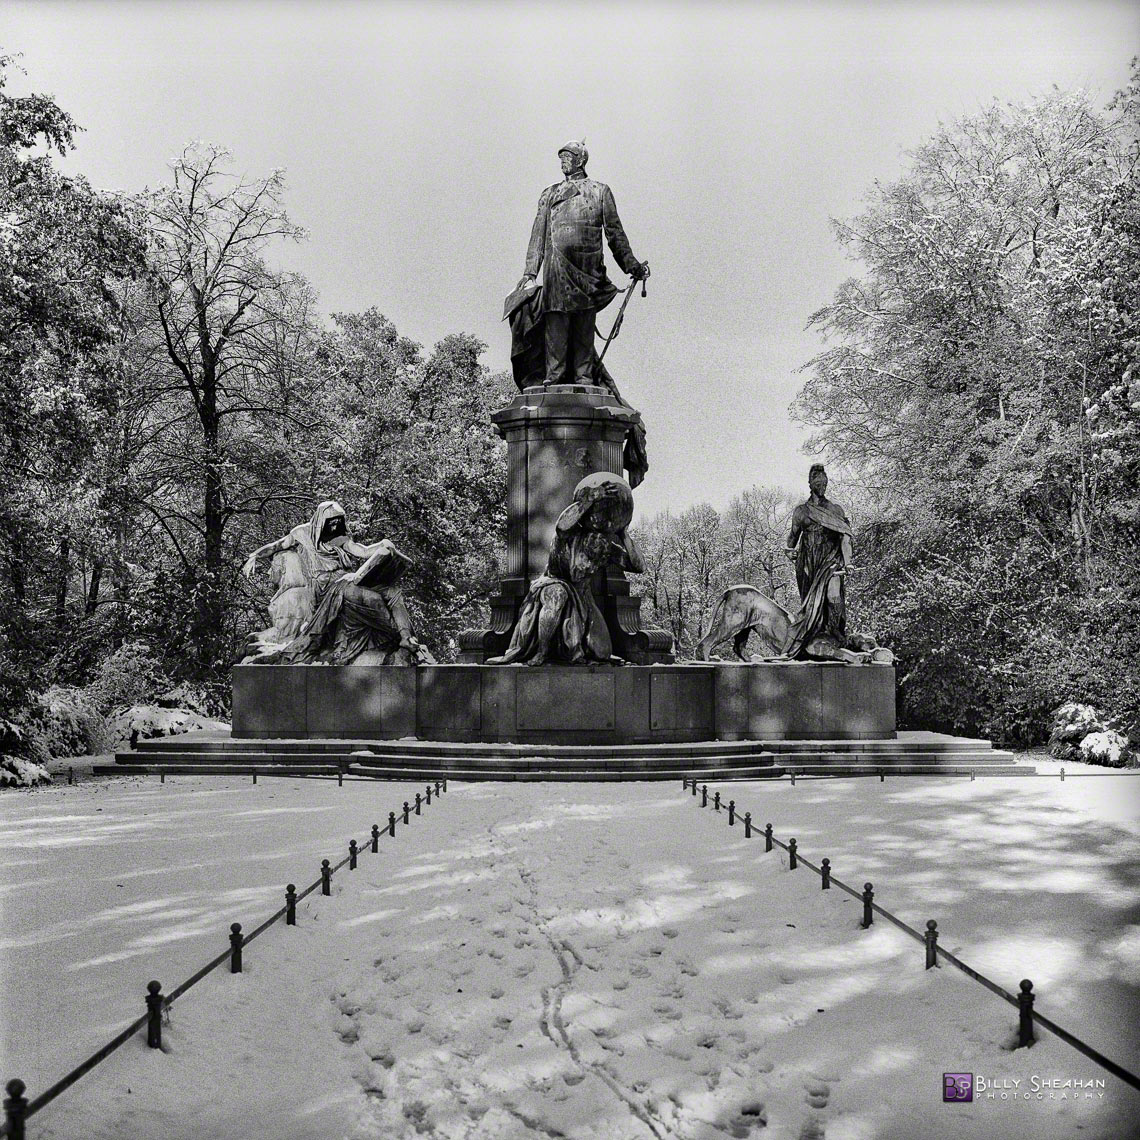 Bismarck_Memorial_in_Tiergarten__Berlin__Germany_Germany-366_08_BW_D